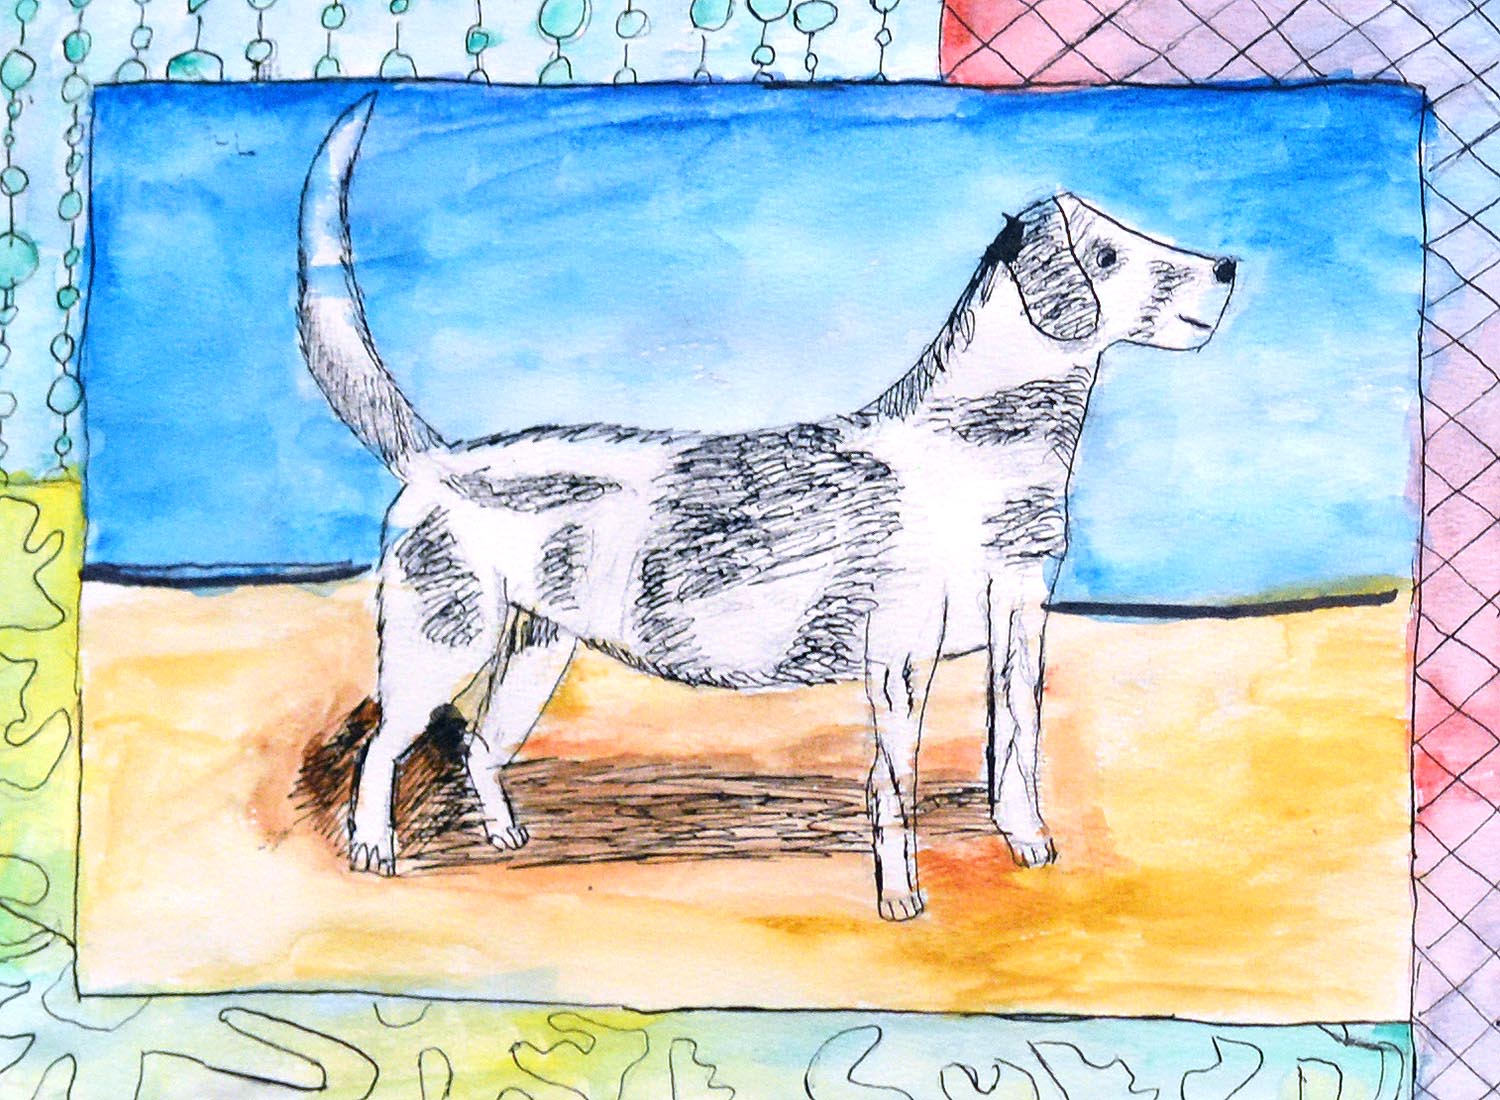 Charlie, a seventh-grader from Woodrow Wilson Middle School, created this artwork as part of a lesson using pen and ink for animal illustration.